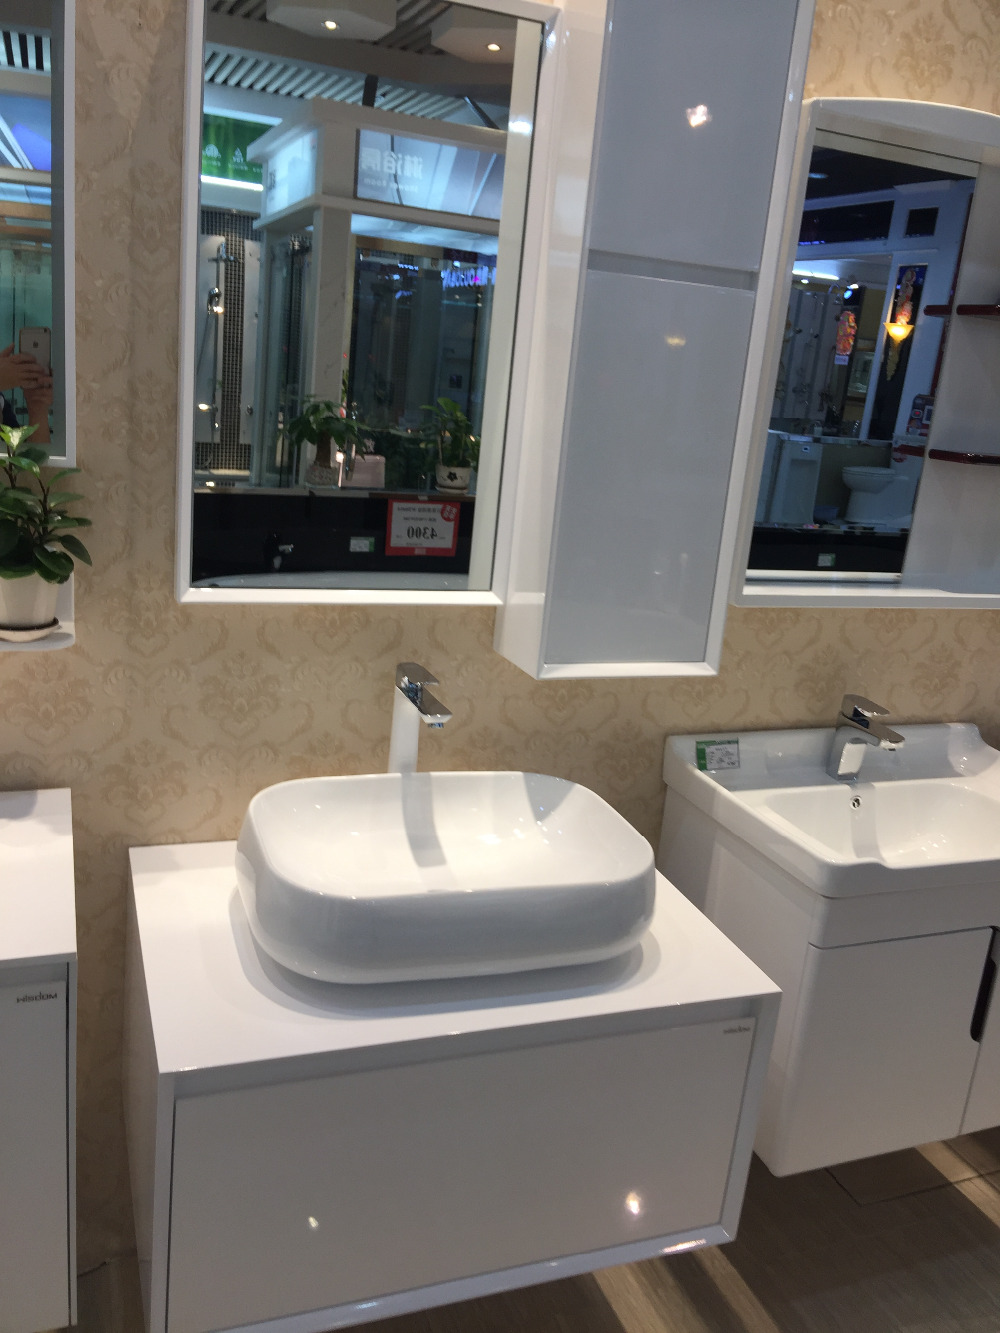 800mm Counter Top Ceramic Single Basin With Solid Wooden Bathroom Vanity Cloakroom Cabinet With Mirror 2011